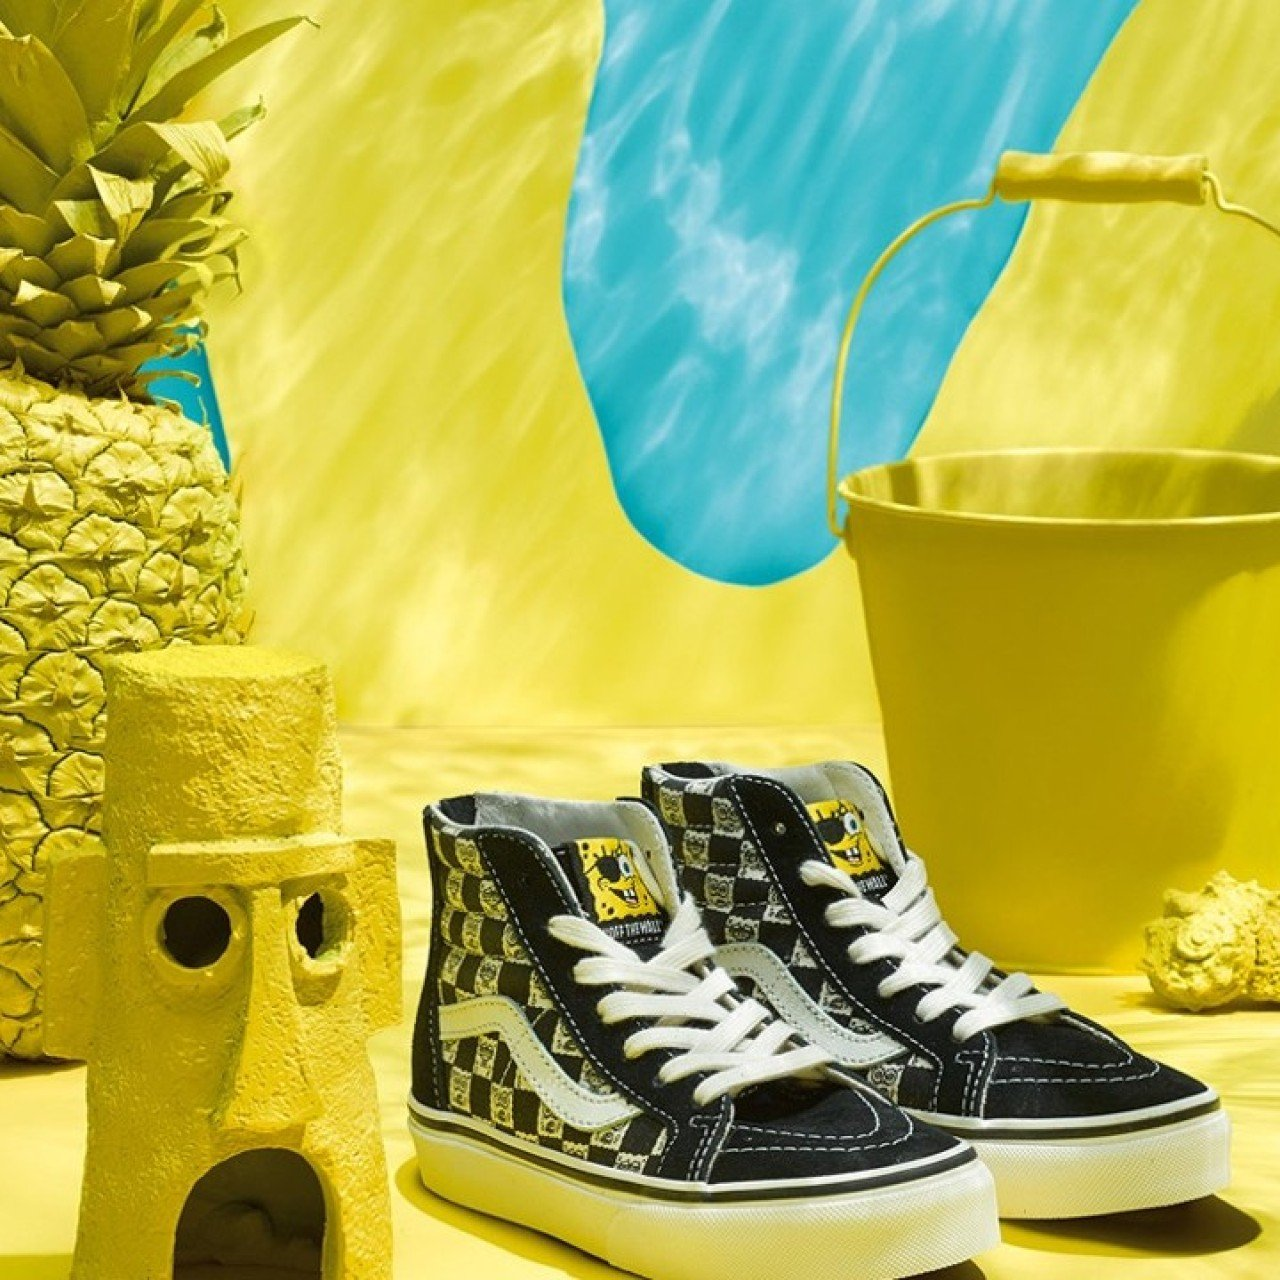 863ca9d28be Vans teams up with SpongeBob SquarePants on new collection | South ...